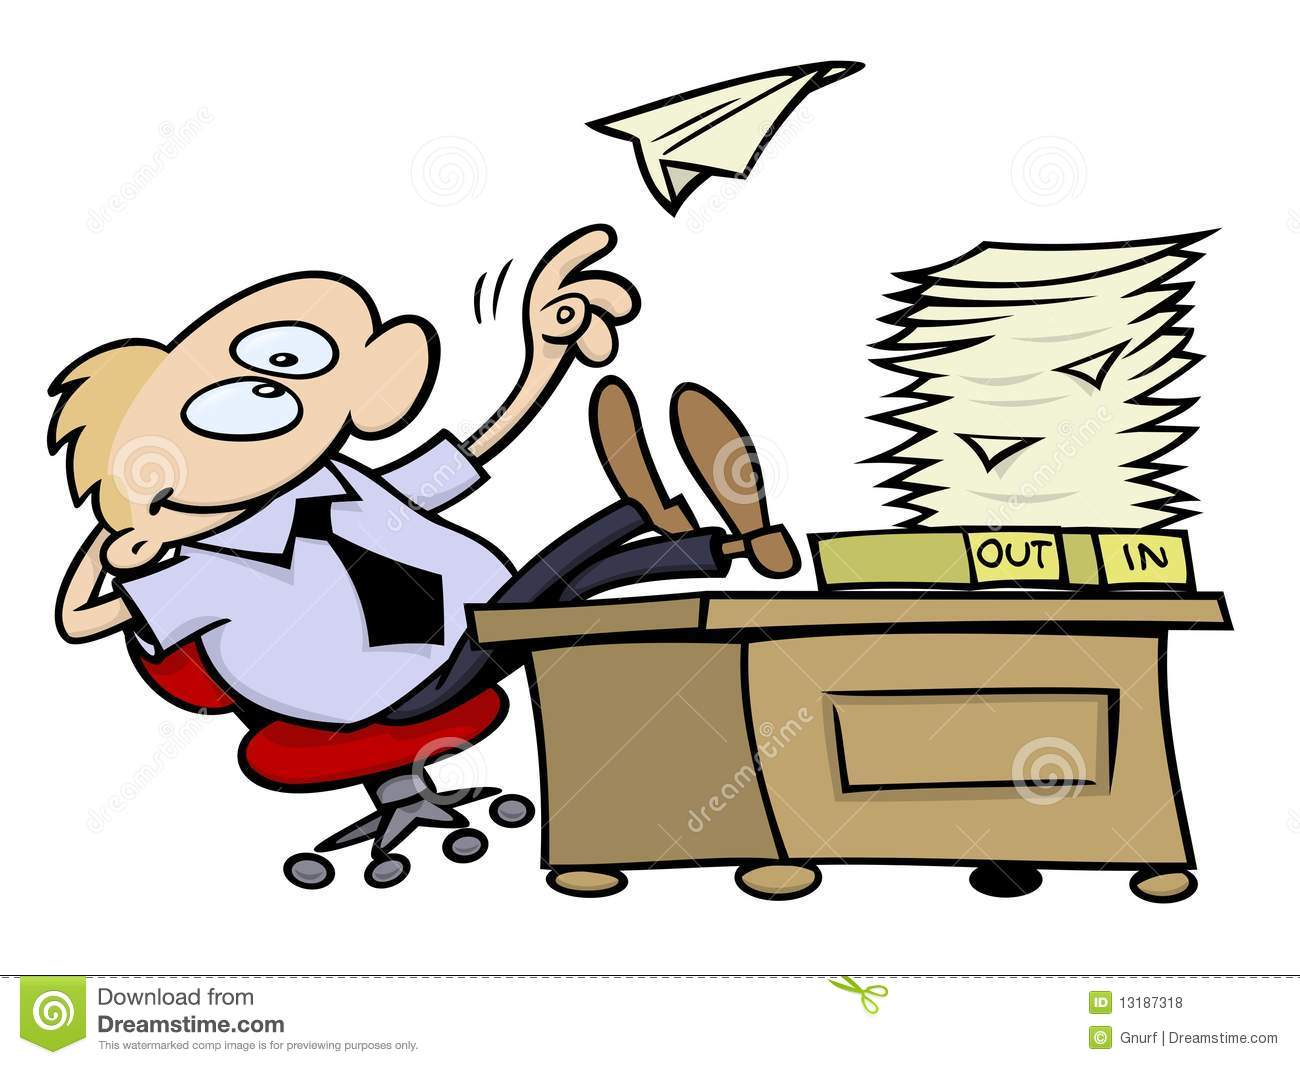 Lazy Toon Guy Throwing A Paper Plane And Resting His Feet On His Desk